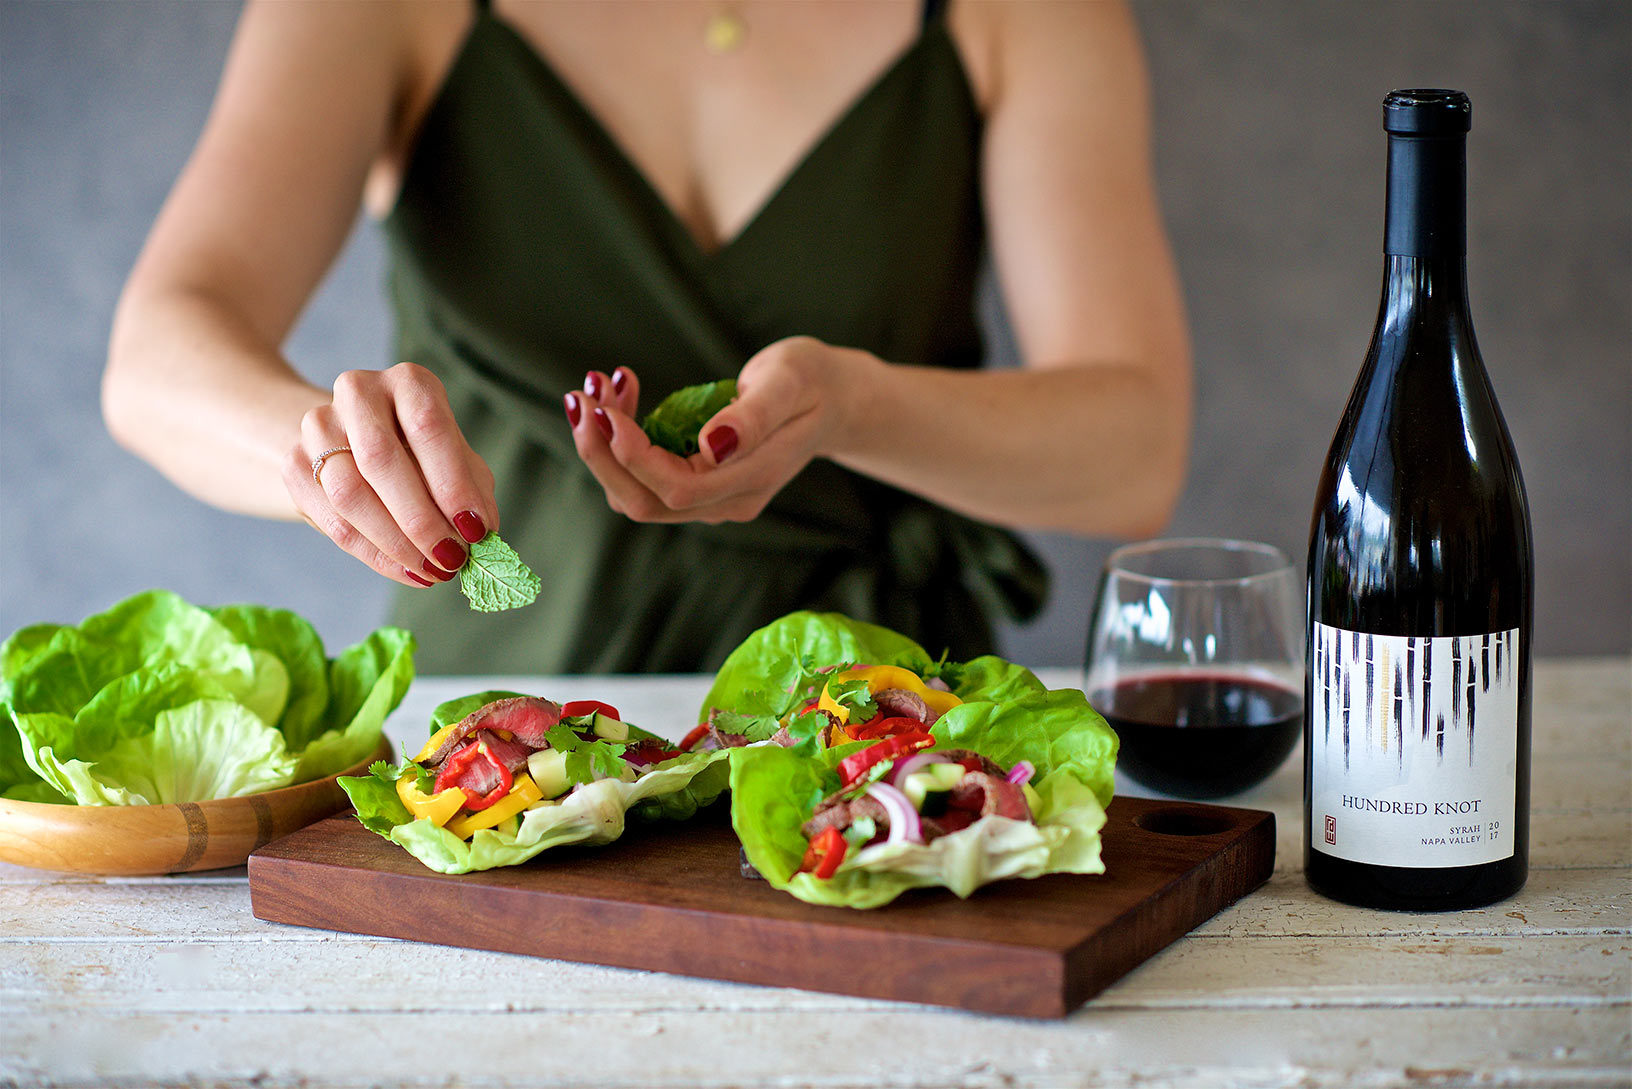 RD Winery Syrah and steak lettuce wraps